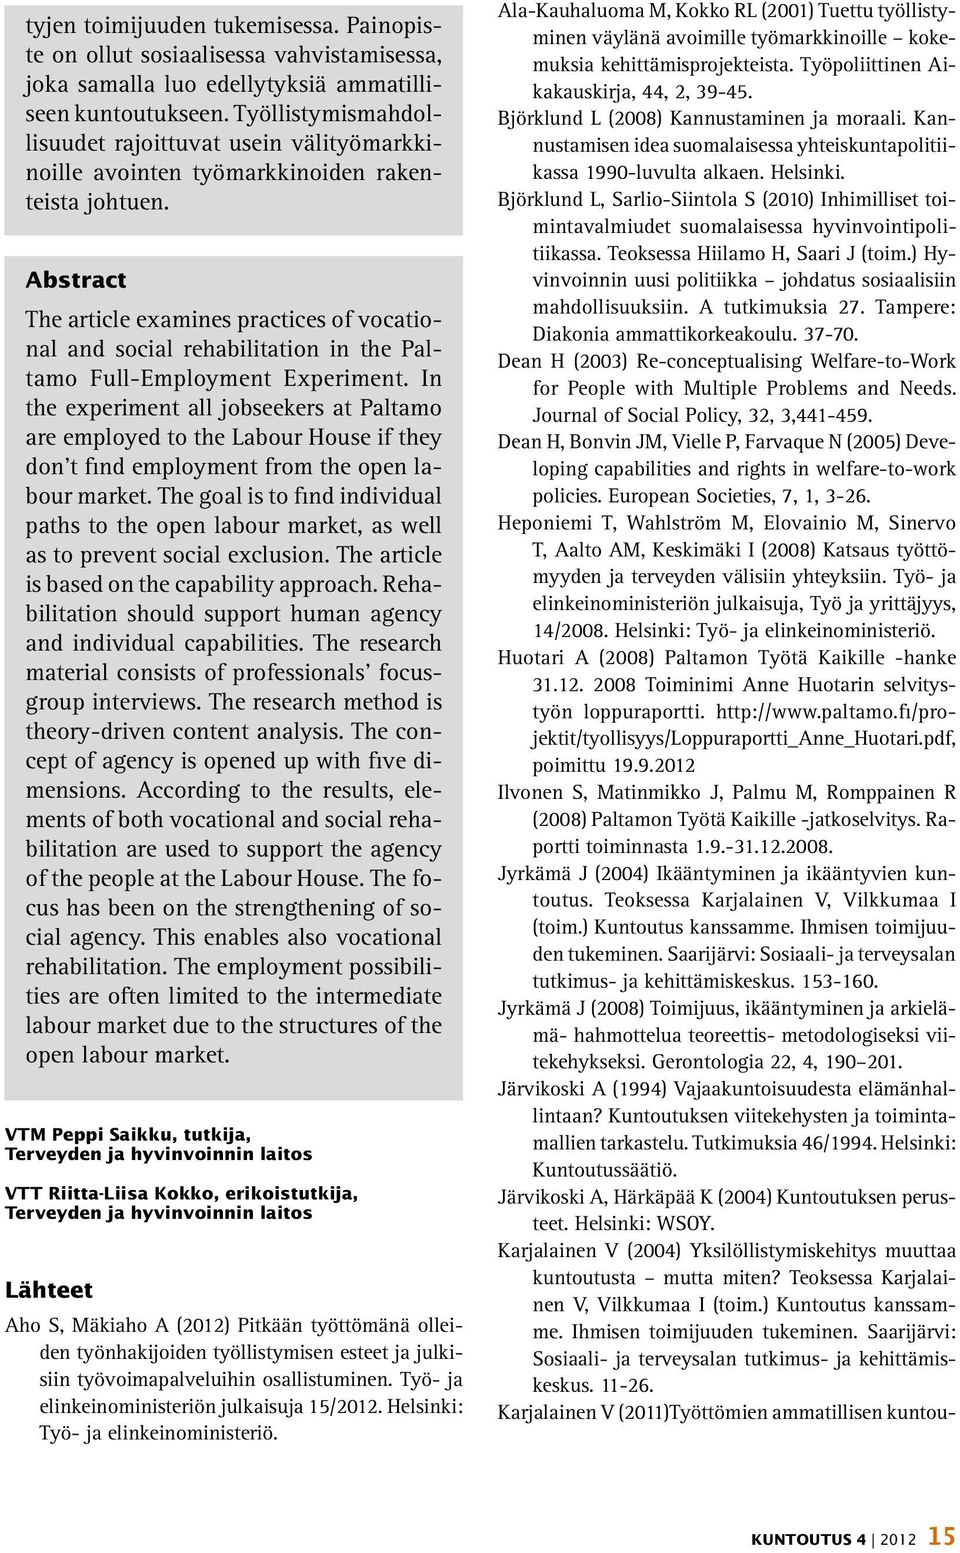 Abstract The article examines practices of vocational and social rehabilitation in the Paltamo Full-Employment Experiment.